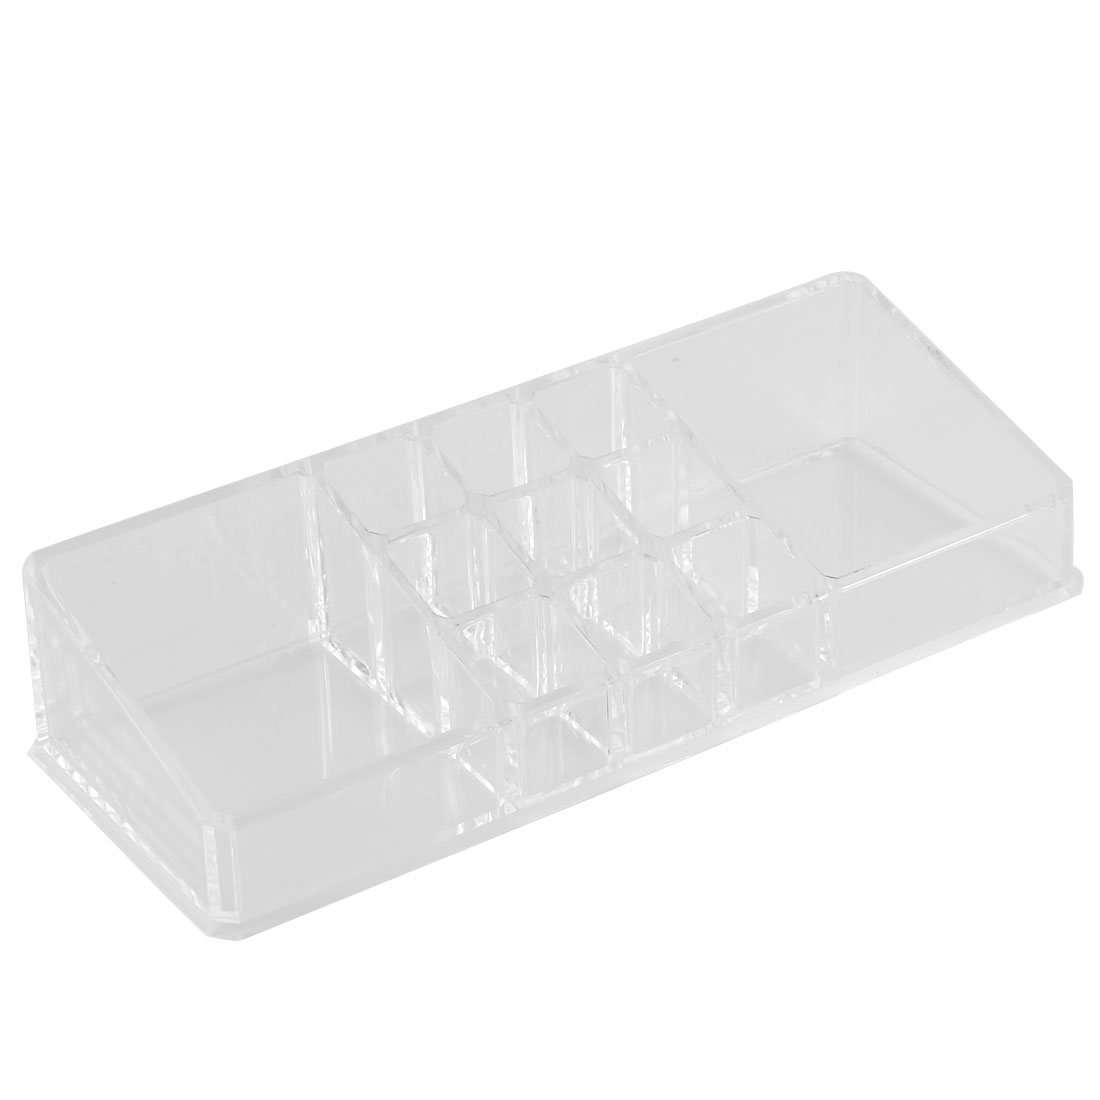 Household Acrylic Rectangle Shaped Jewelry Storage Box Earring Organizer Clear